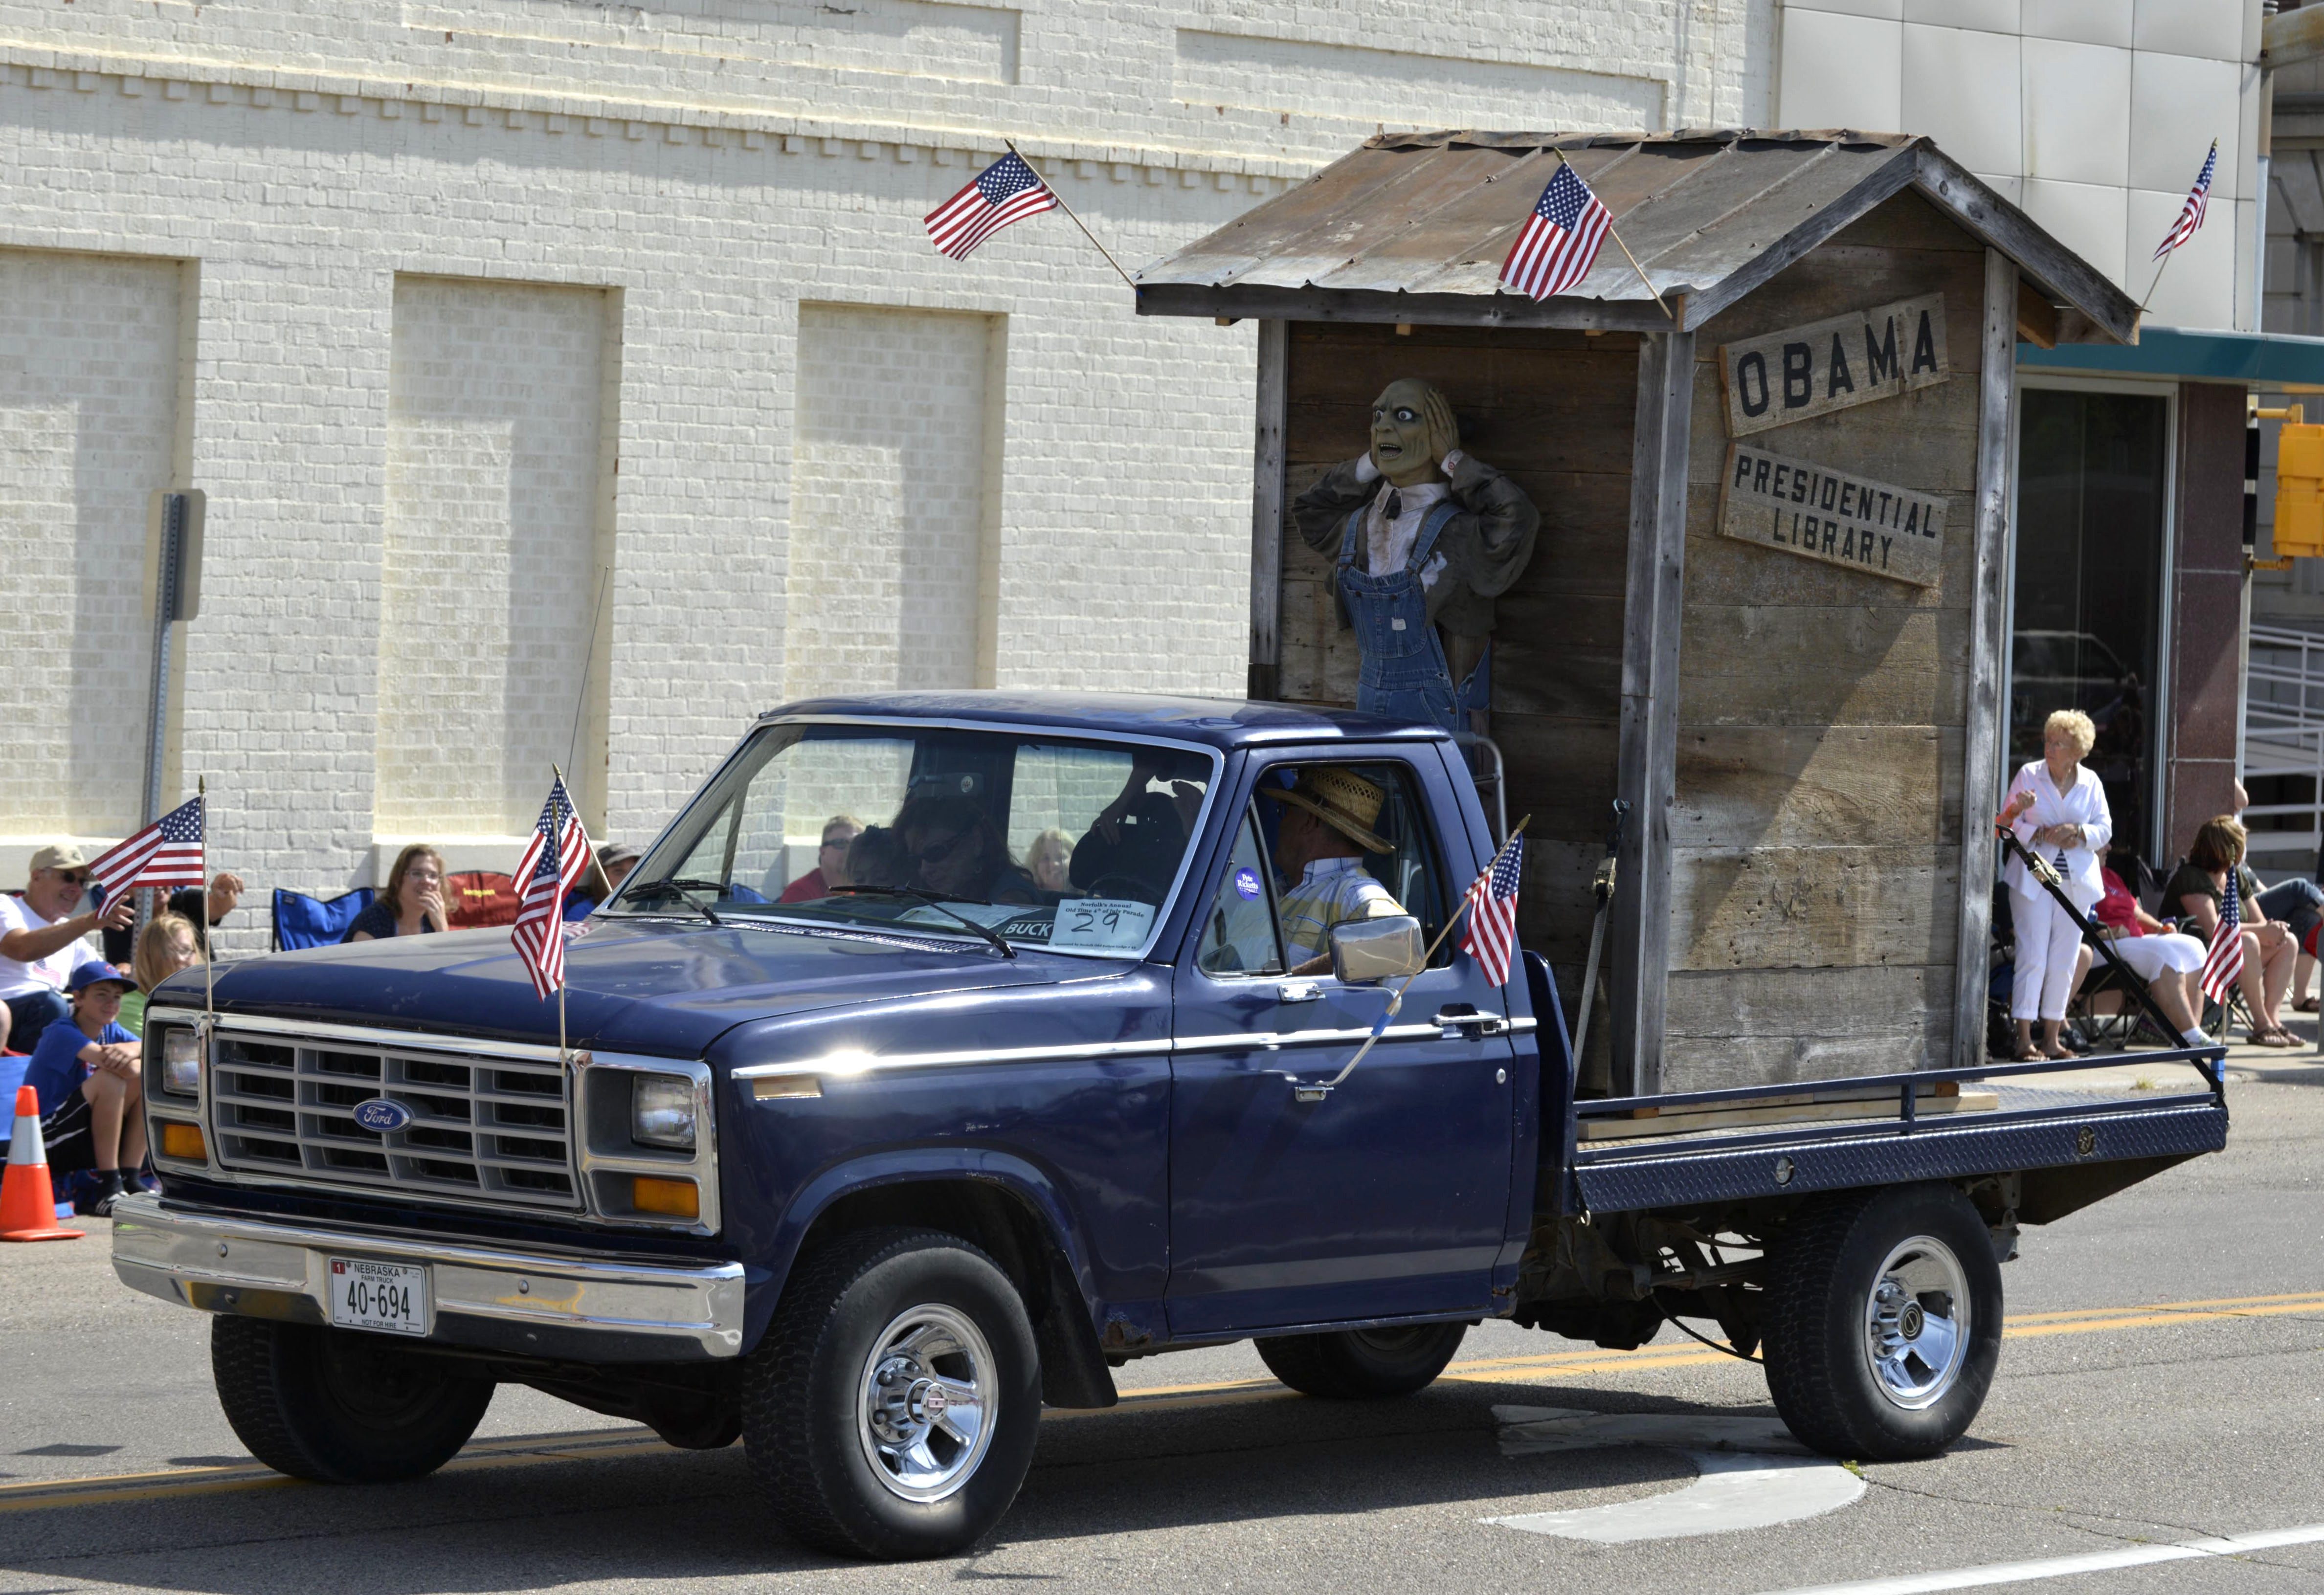 DOJ investigates Nebraska parade float critical of Obama